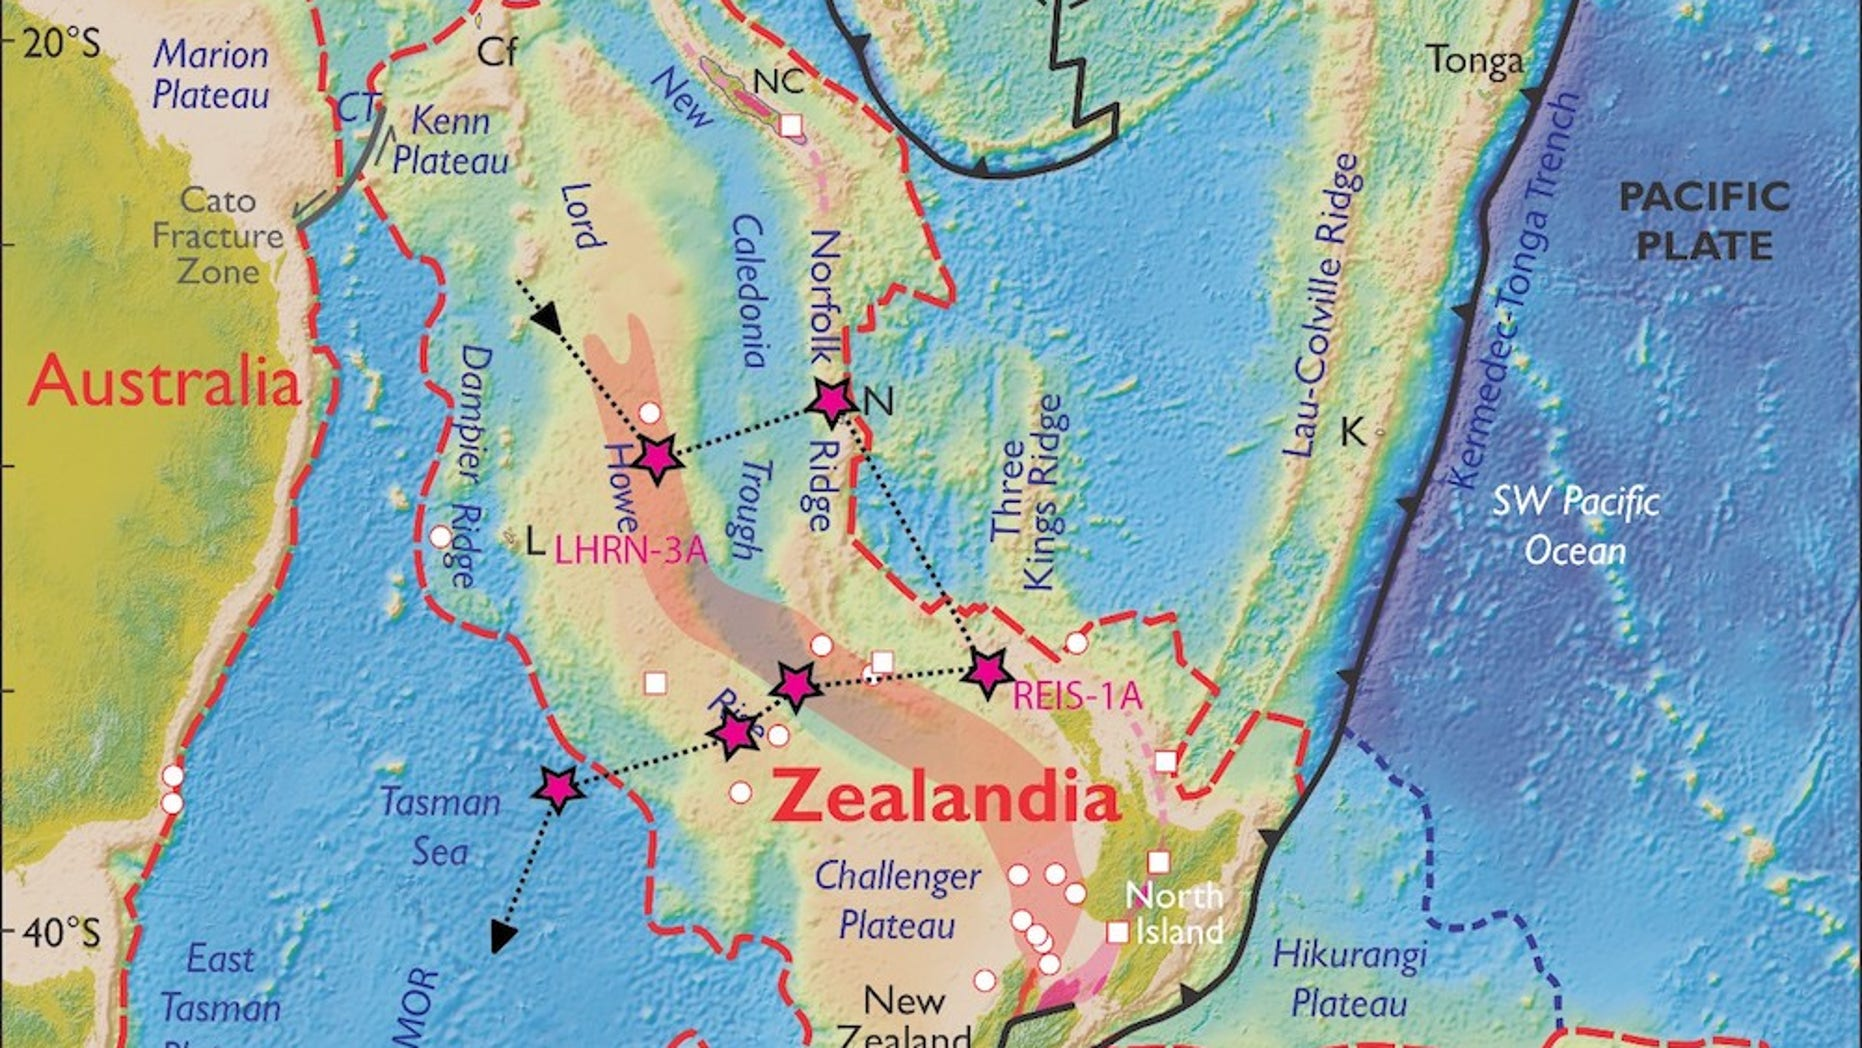 A map of Zealandia. Scientists aboard the Joides Resolution will visit six sites on this lost continent to take core samples later this summer.